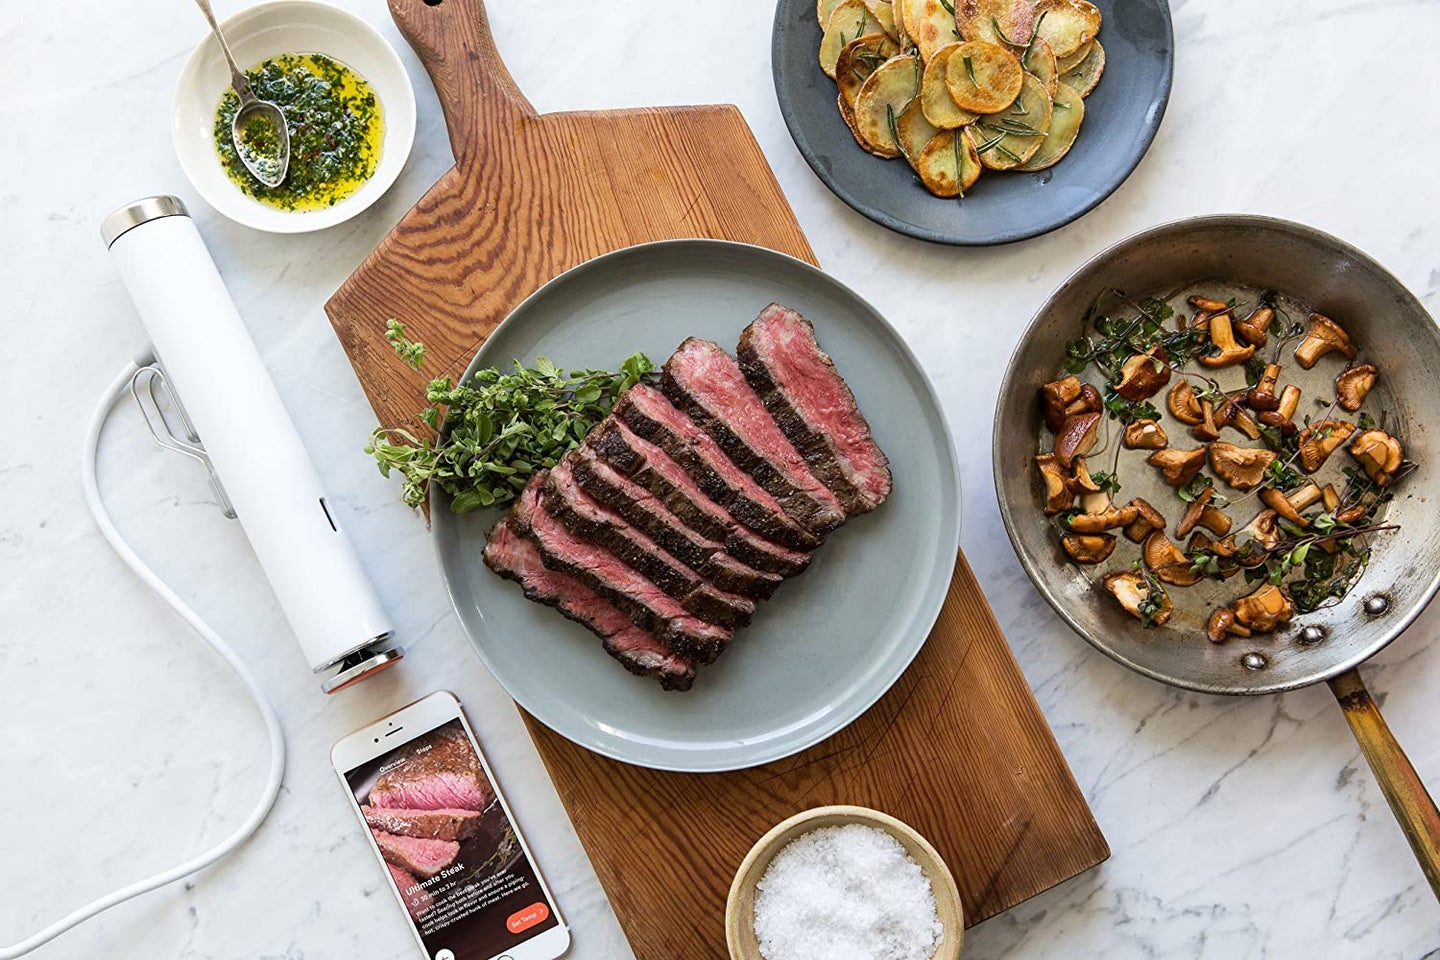 food on a table next to sous vide